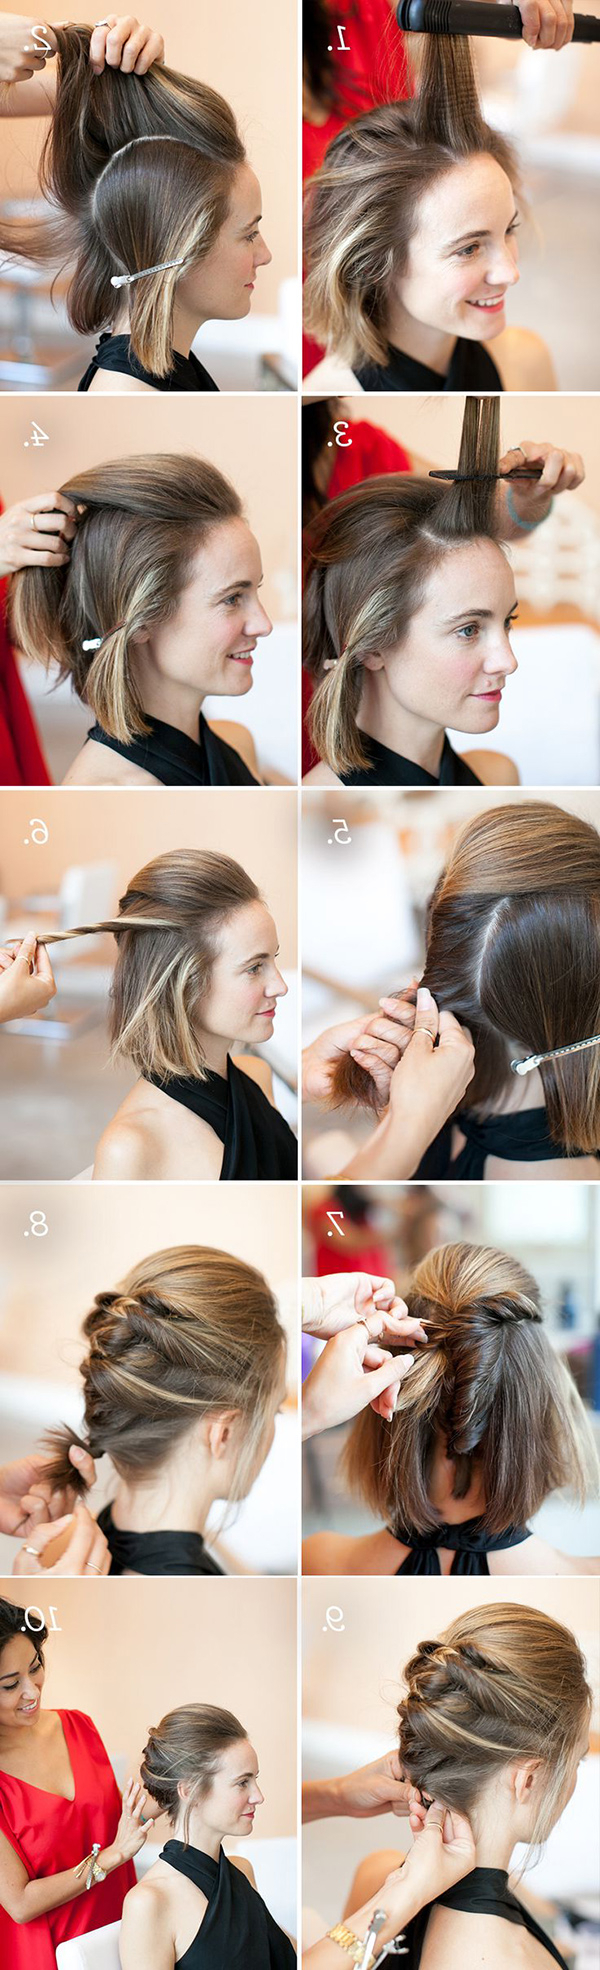 14 Gorgeous Prom Hairstyles For Short Hair – Gurl | Gurl For Short Hairstyles For Prom (View 23 of 25)